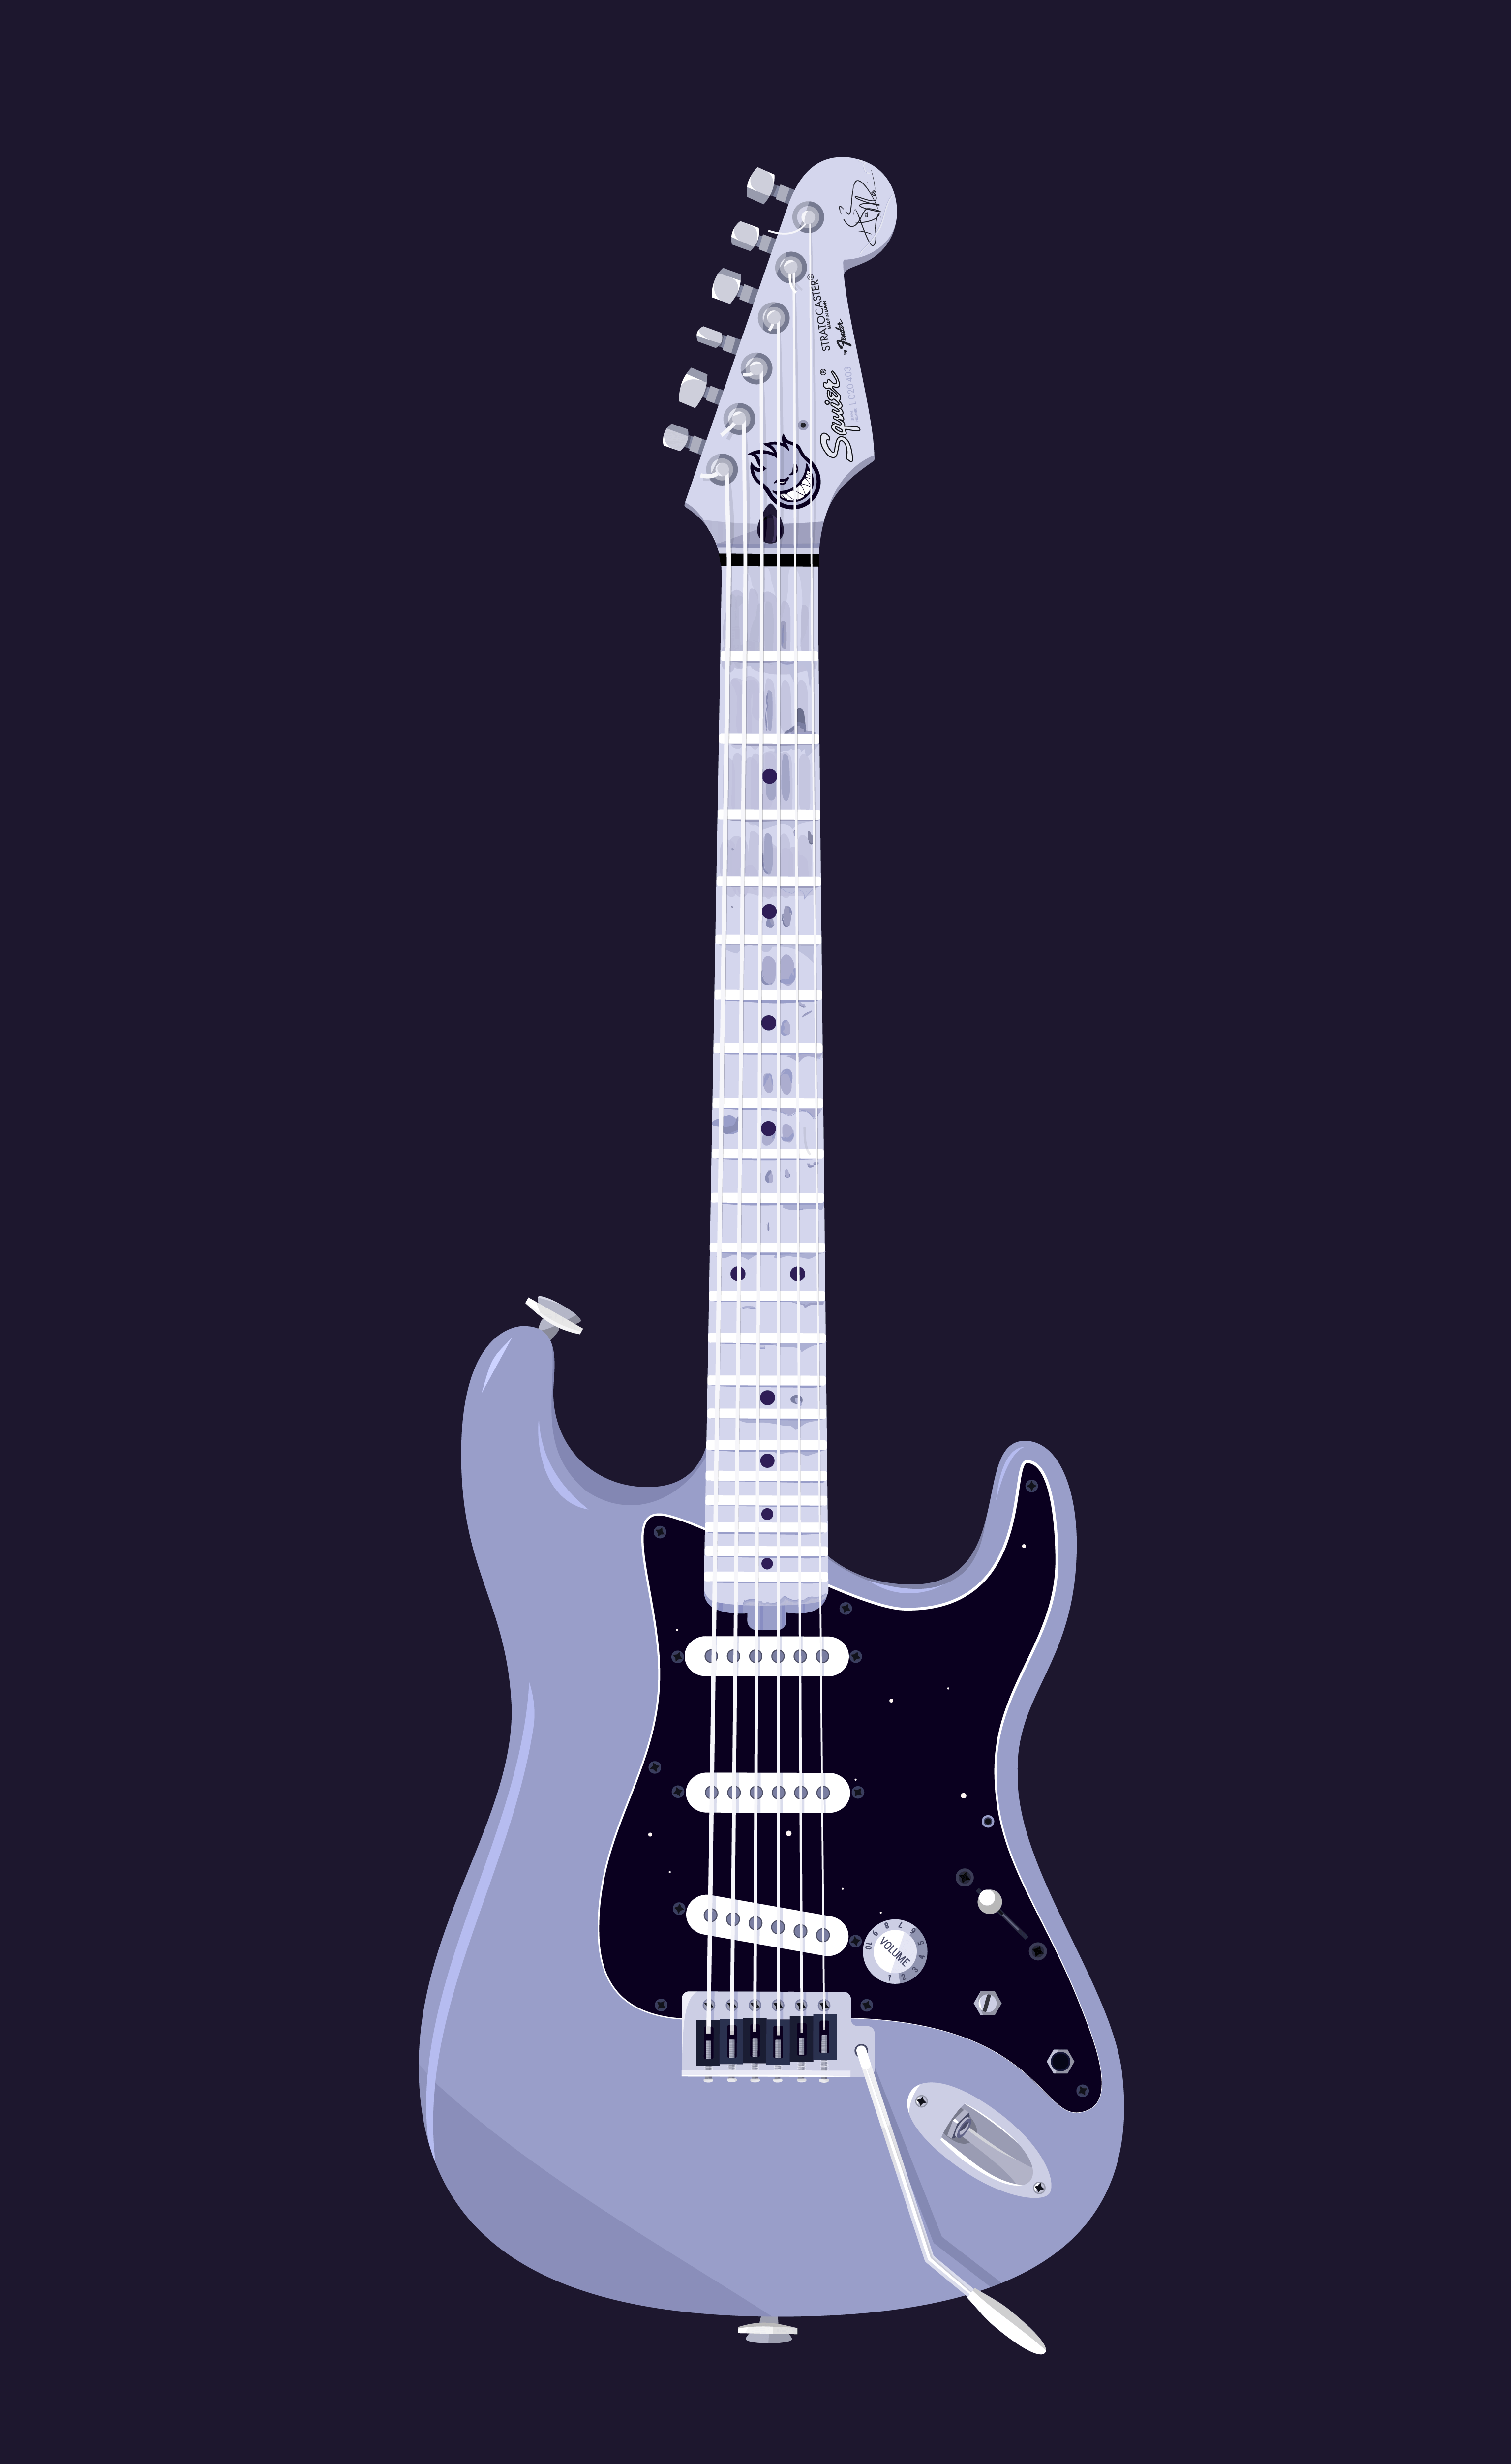 An illustration of my Squier Stratocaster Hank Marvin Signature 1992